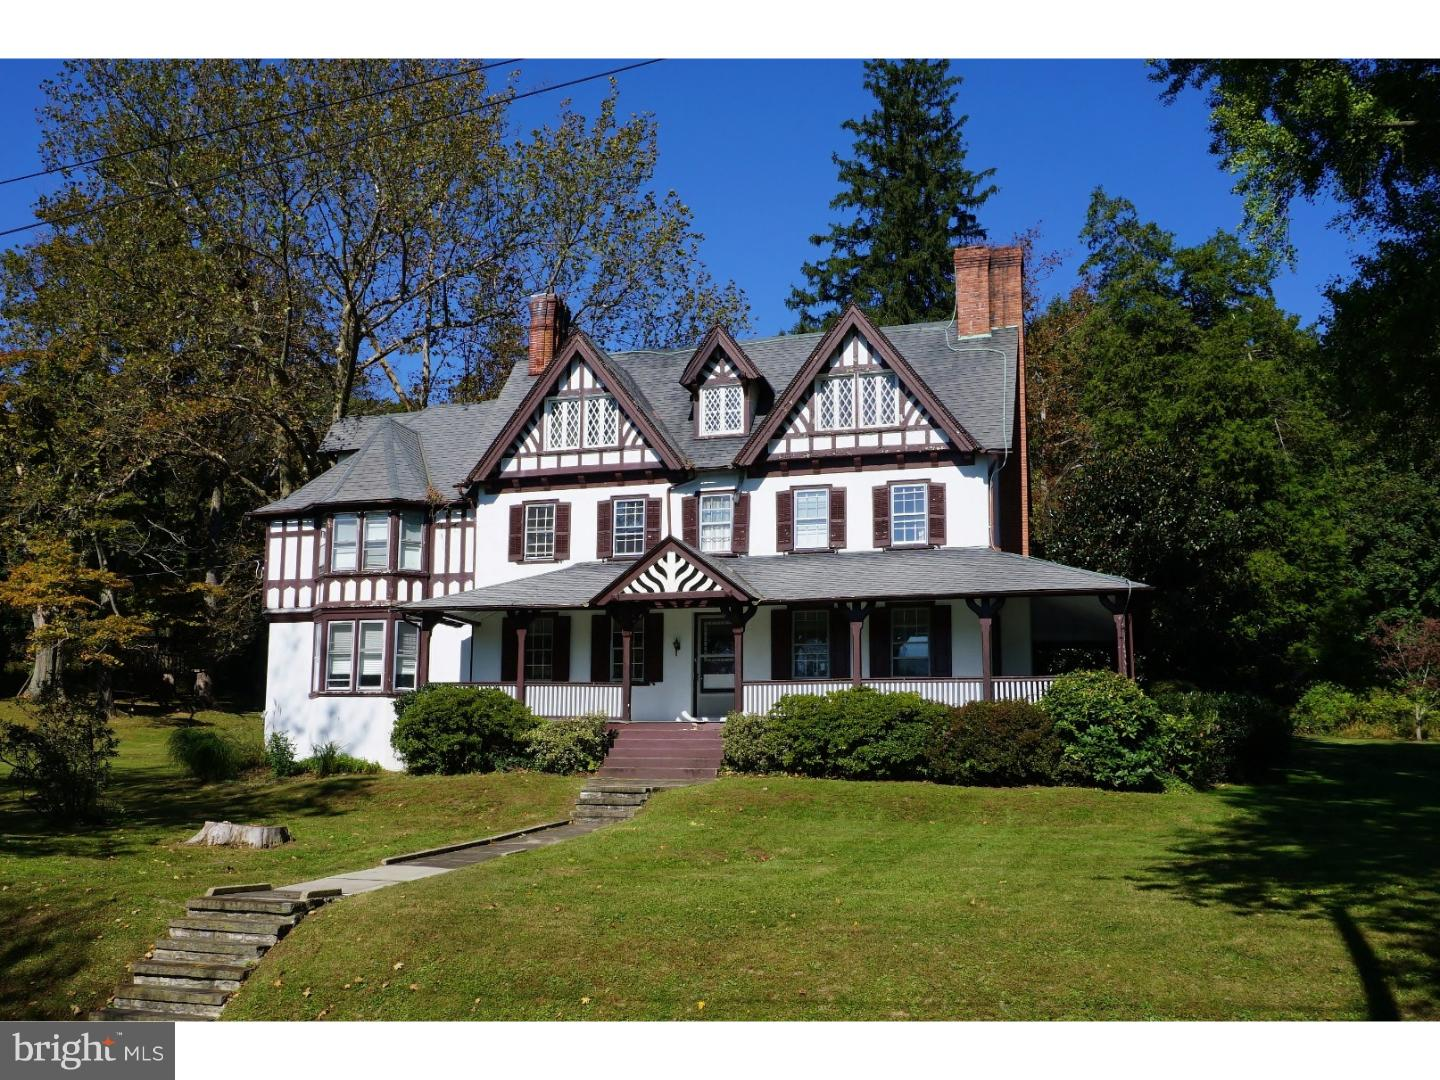 703 OLD VALLEY ROAD, EXTON, PA 19341